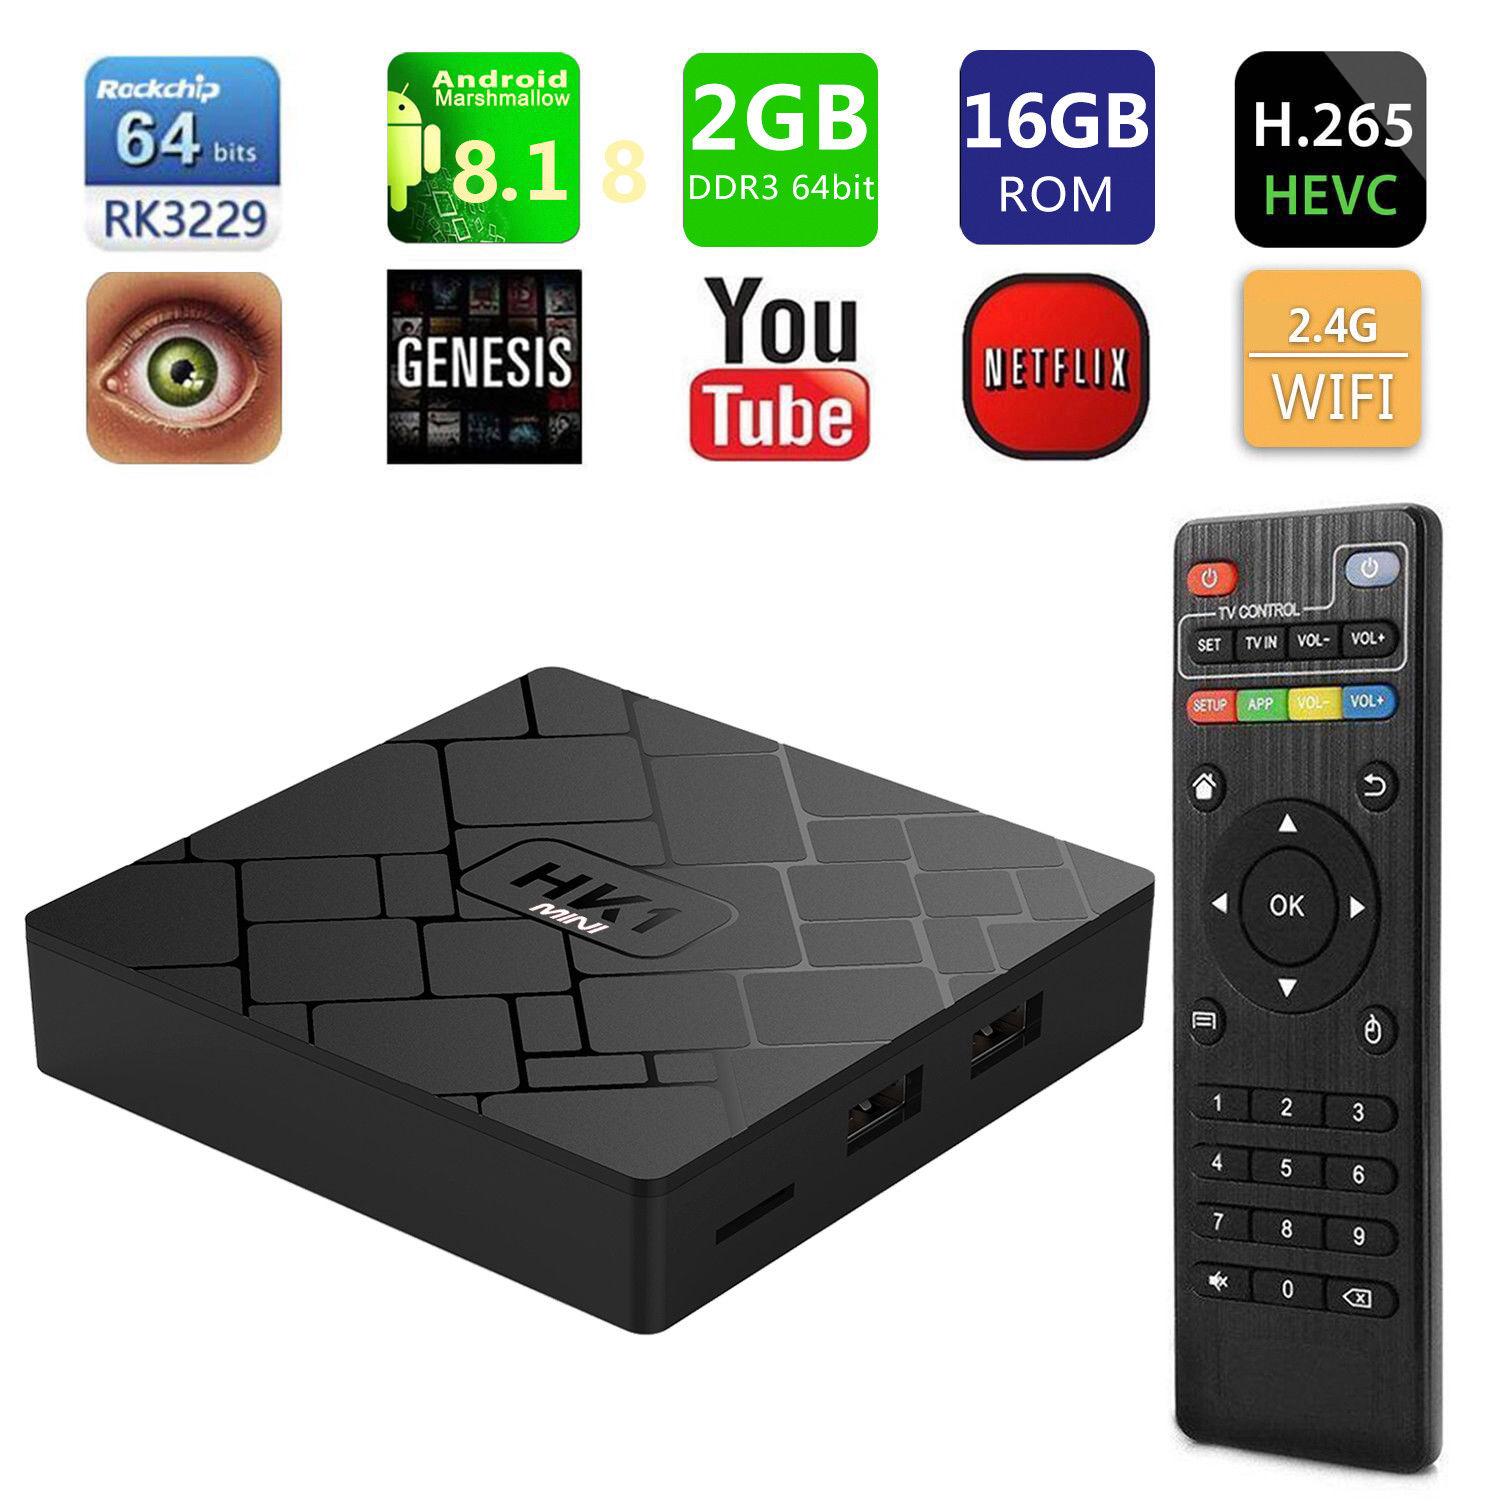 2GB+16GB Android 8.1 RK3229 Quad Core Smart TV BOX WIFI HDMI 3D 4K Media Kod18.02GB+16GB Android 8.1 RK3229 Quad Core Smart TV BOX WIFI HDMI 3D 4K Media Kod18.0